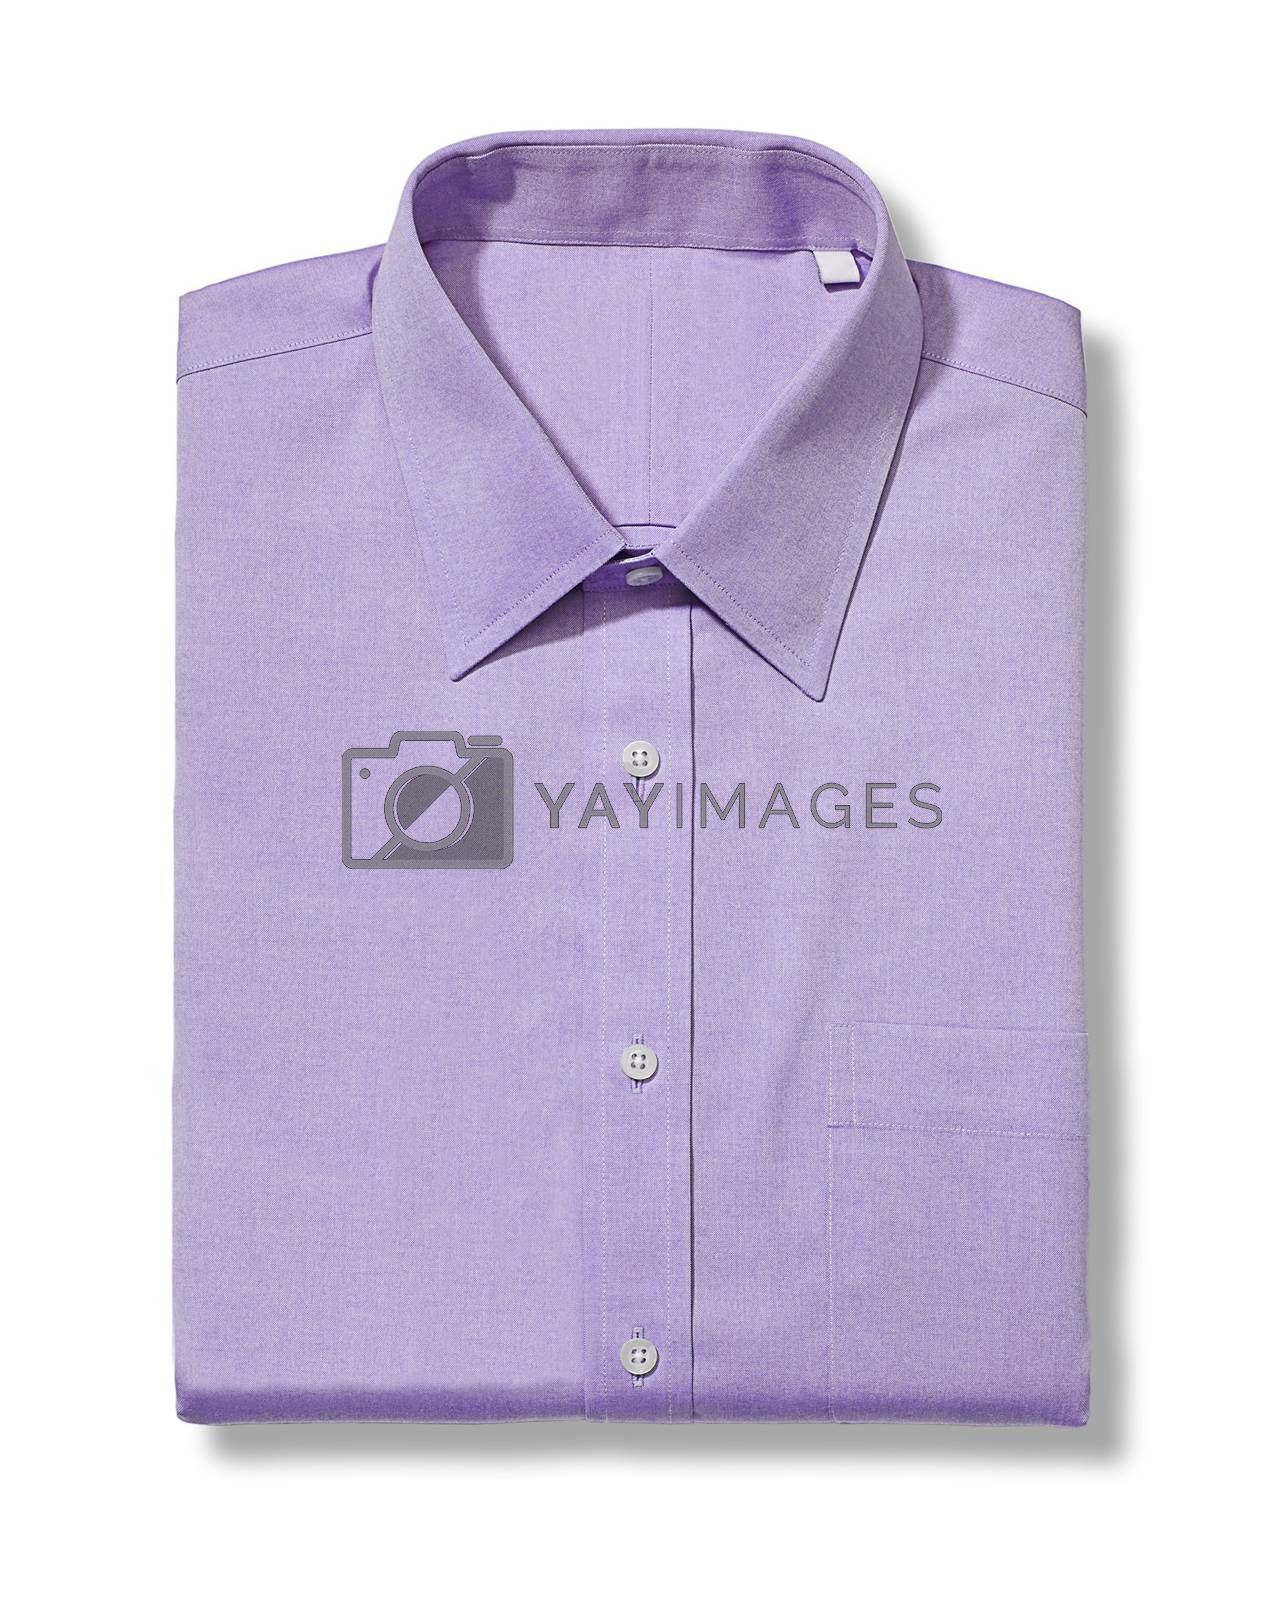 classic long sleeve violet shirt isolated on white background